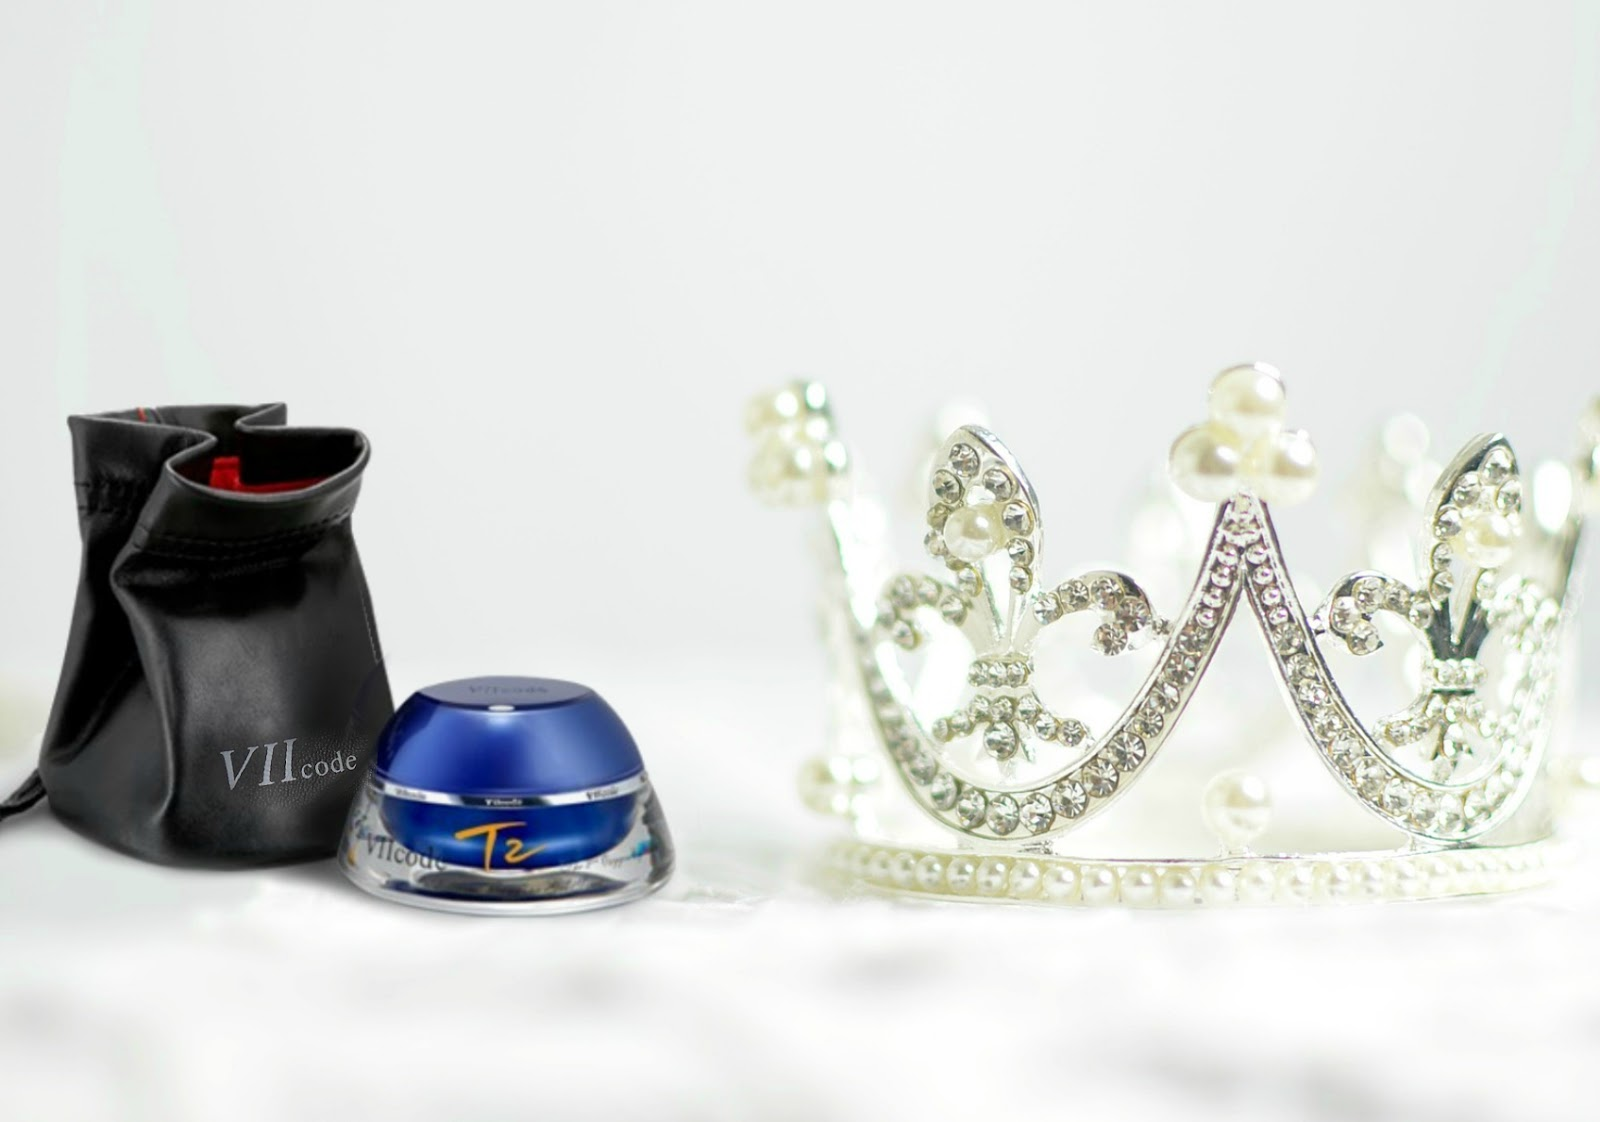 Bye, Bye Under Eye Wrinkles With VIIcode T2 Oxygen Eye Cream Fit For A Queen By Barbies Beauty Bits